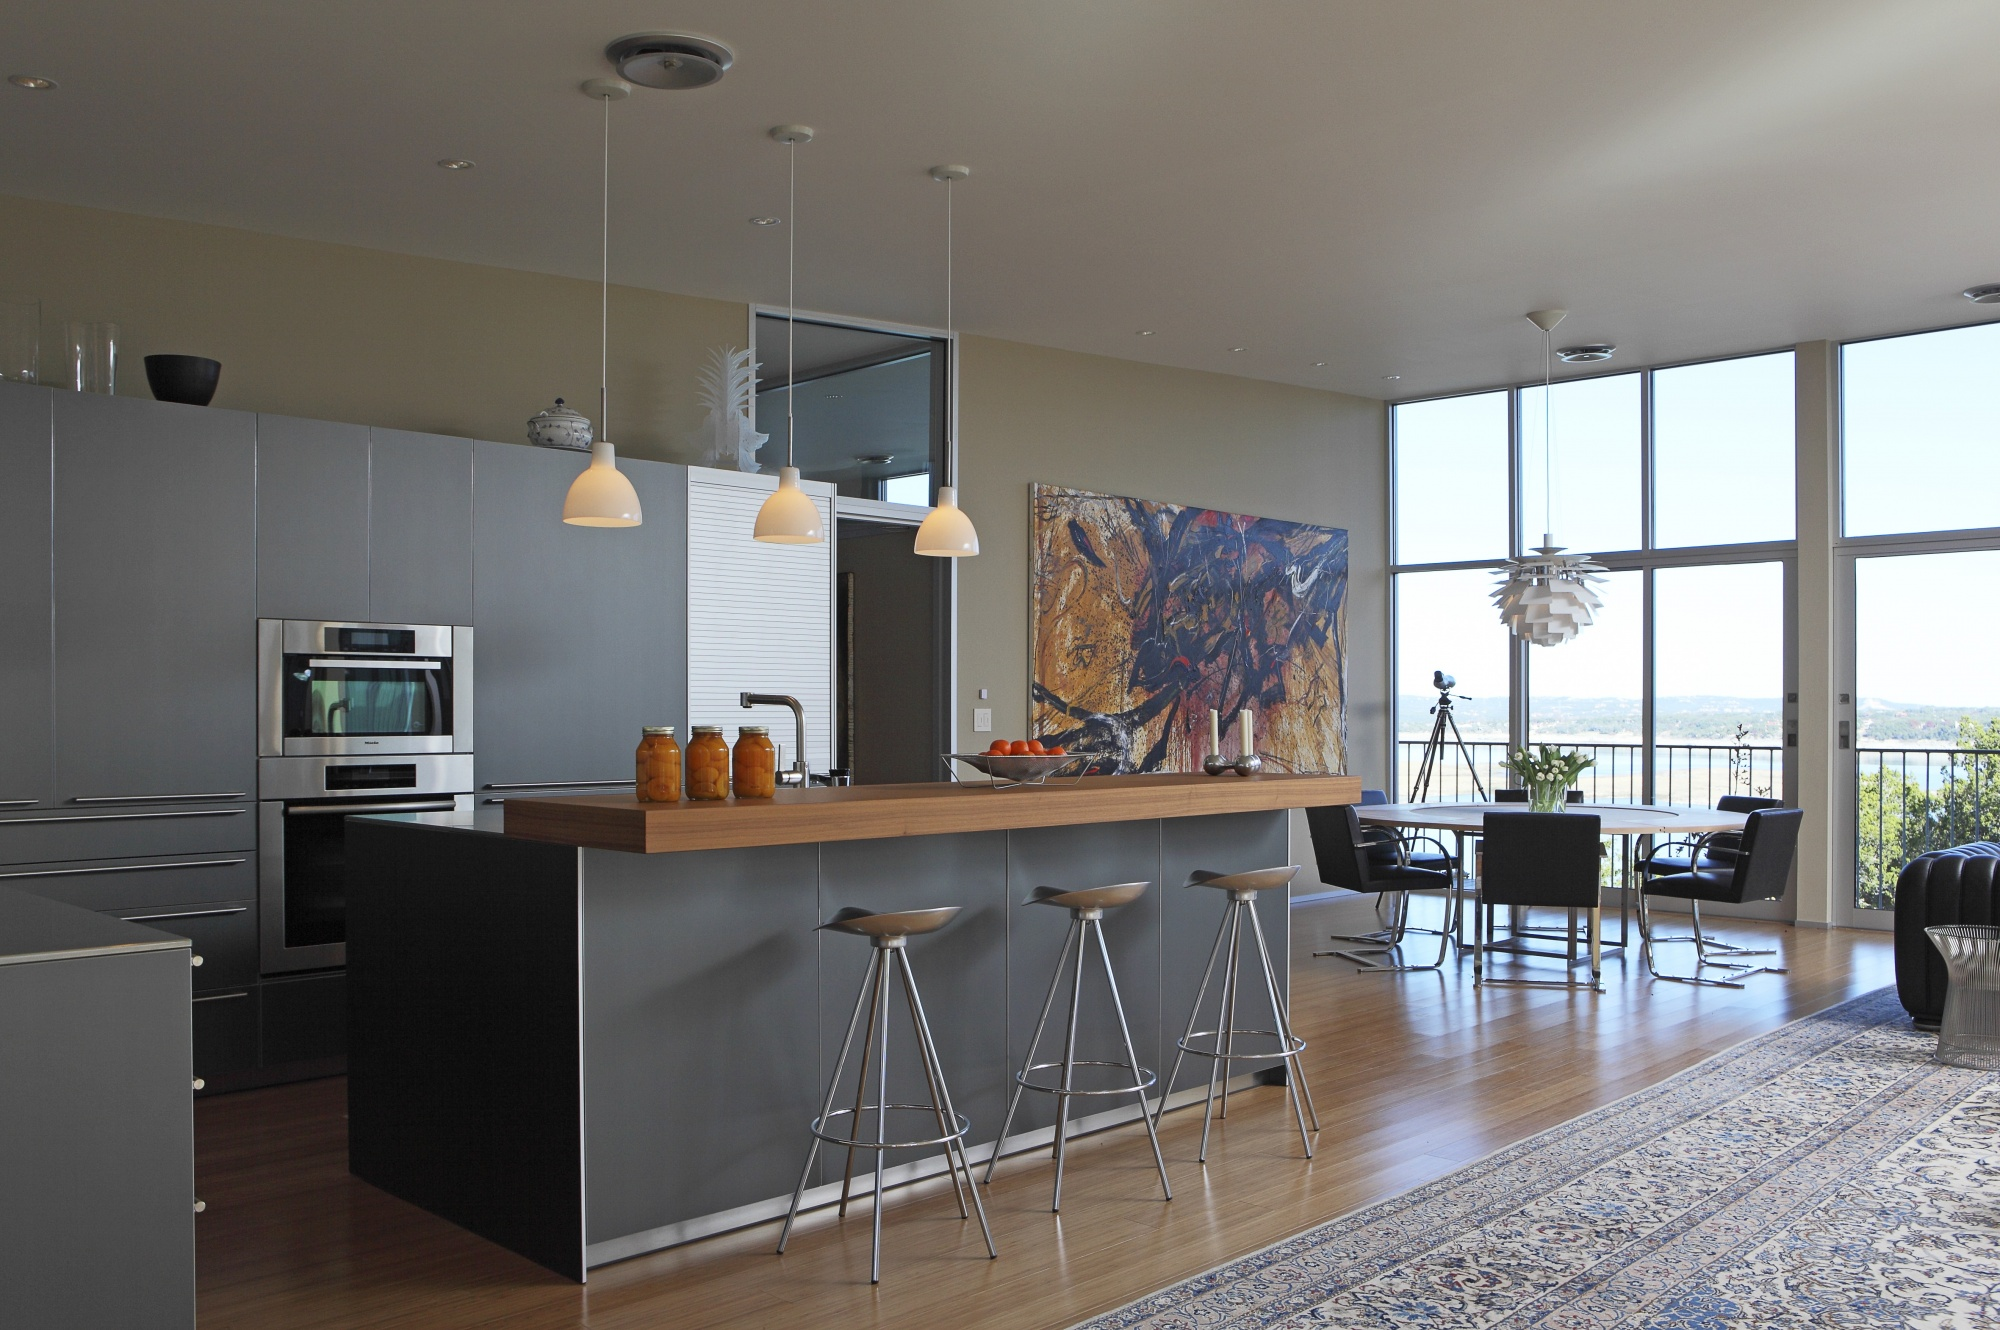 European kitchen provides efficiency to this space.